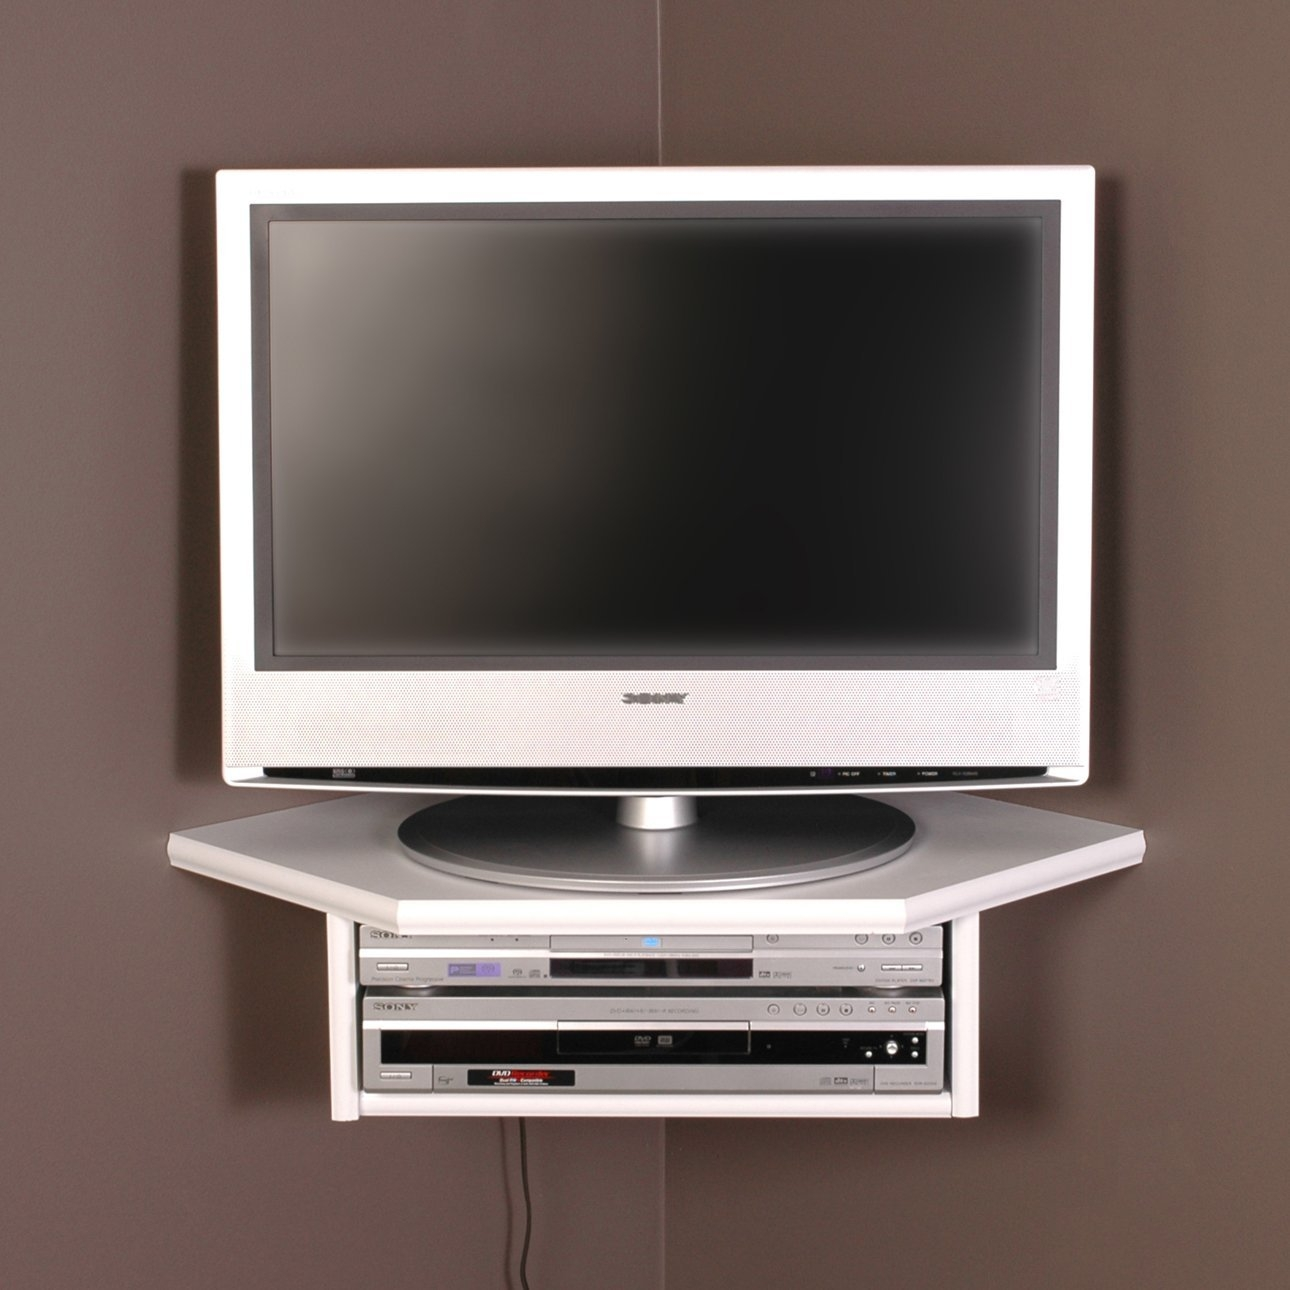 Amazon Creative Connectors Corner Floating Wall Shelf White For Corner Shelf For Dvd Player On Wall (Image 3 of 15)